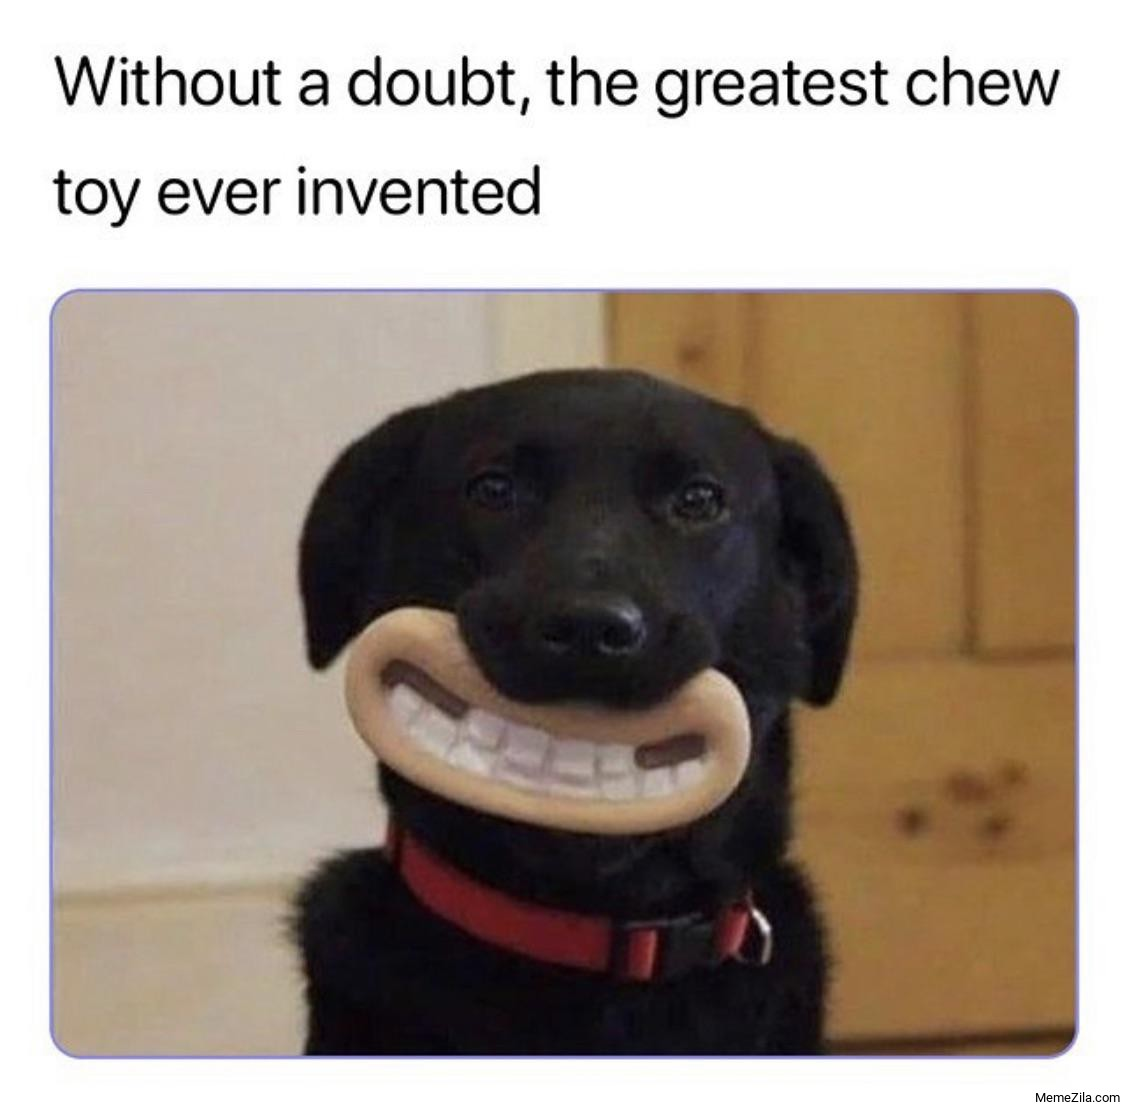 Without a doubt the greatest chew toy ever invented meme